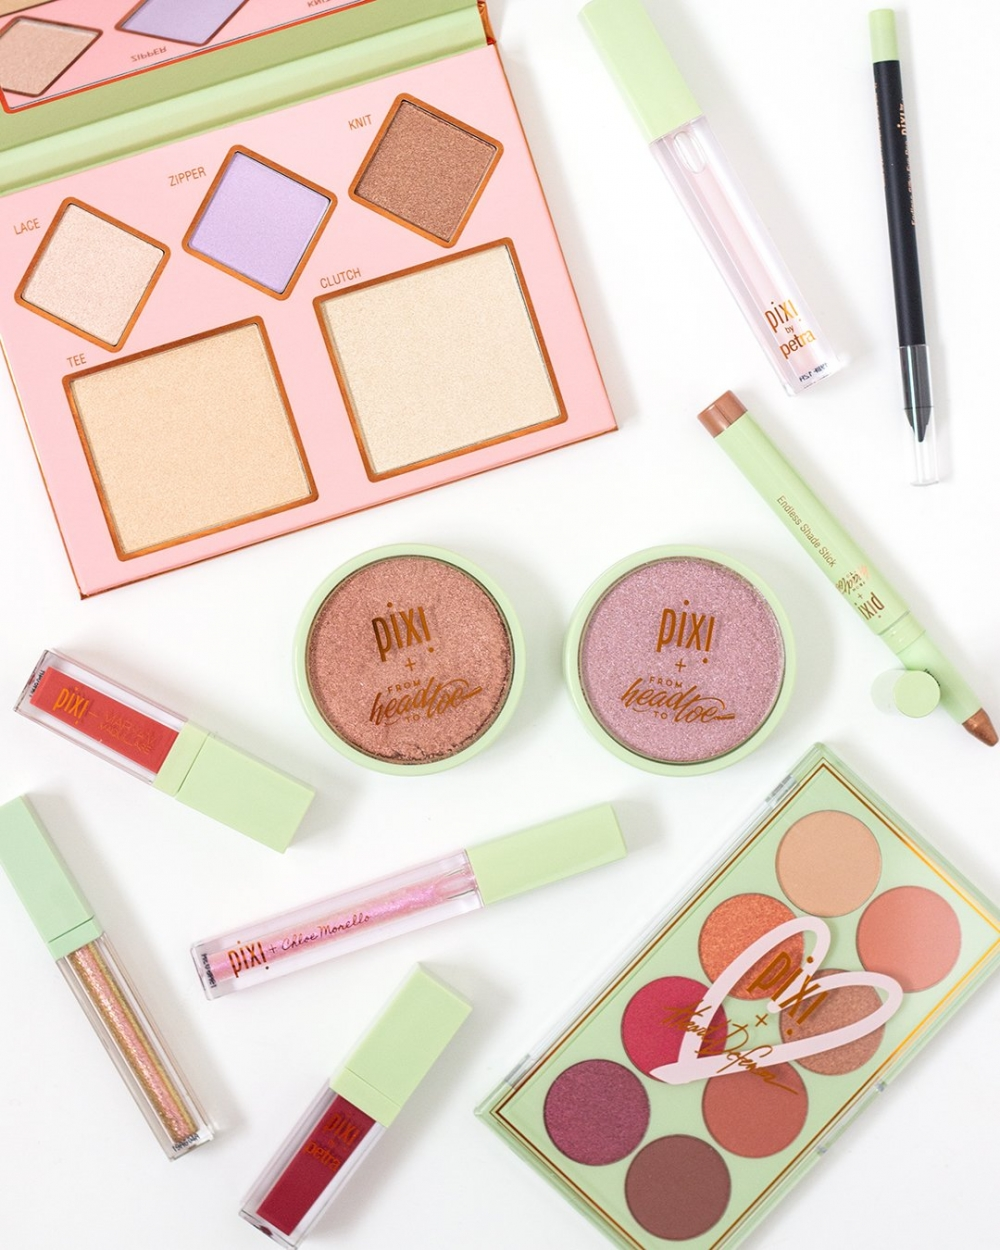 Shop the Pixi Pretties collection